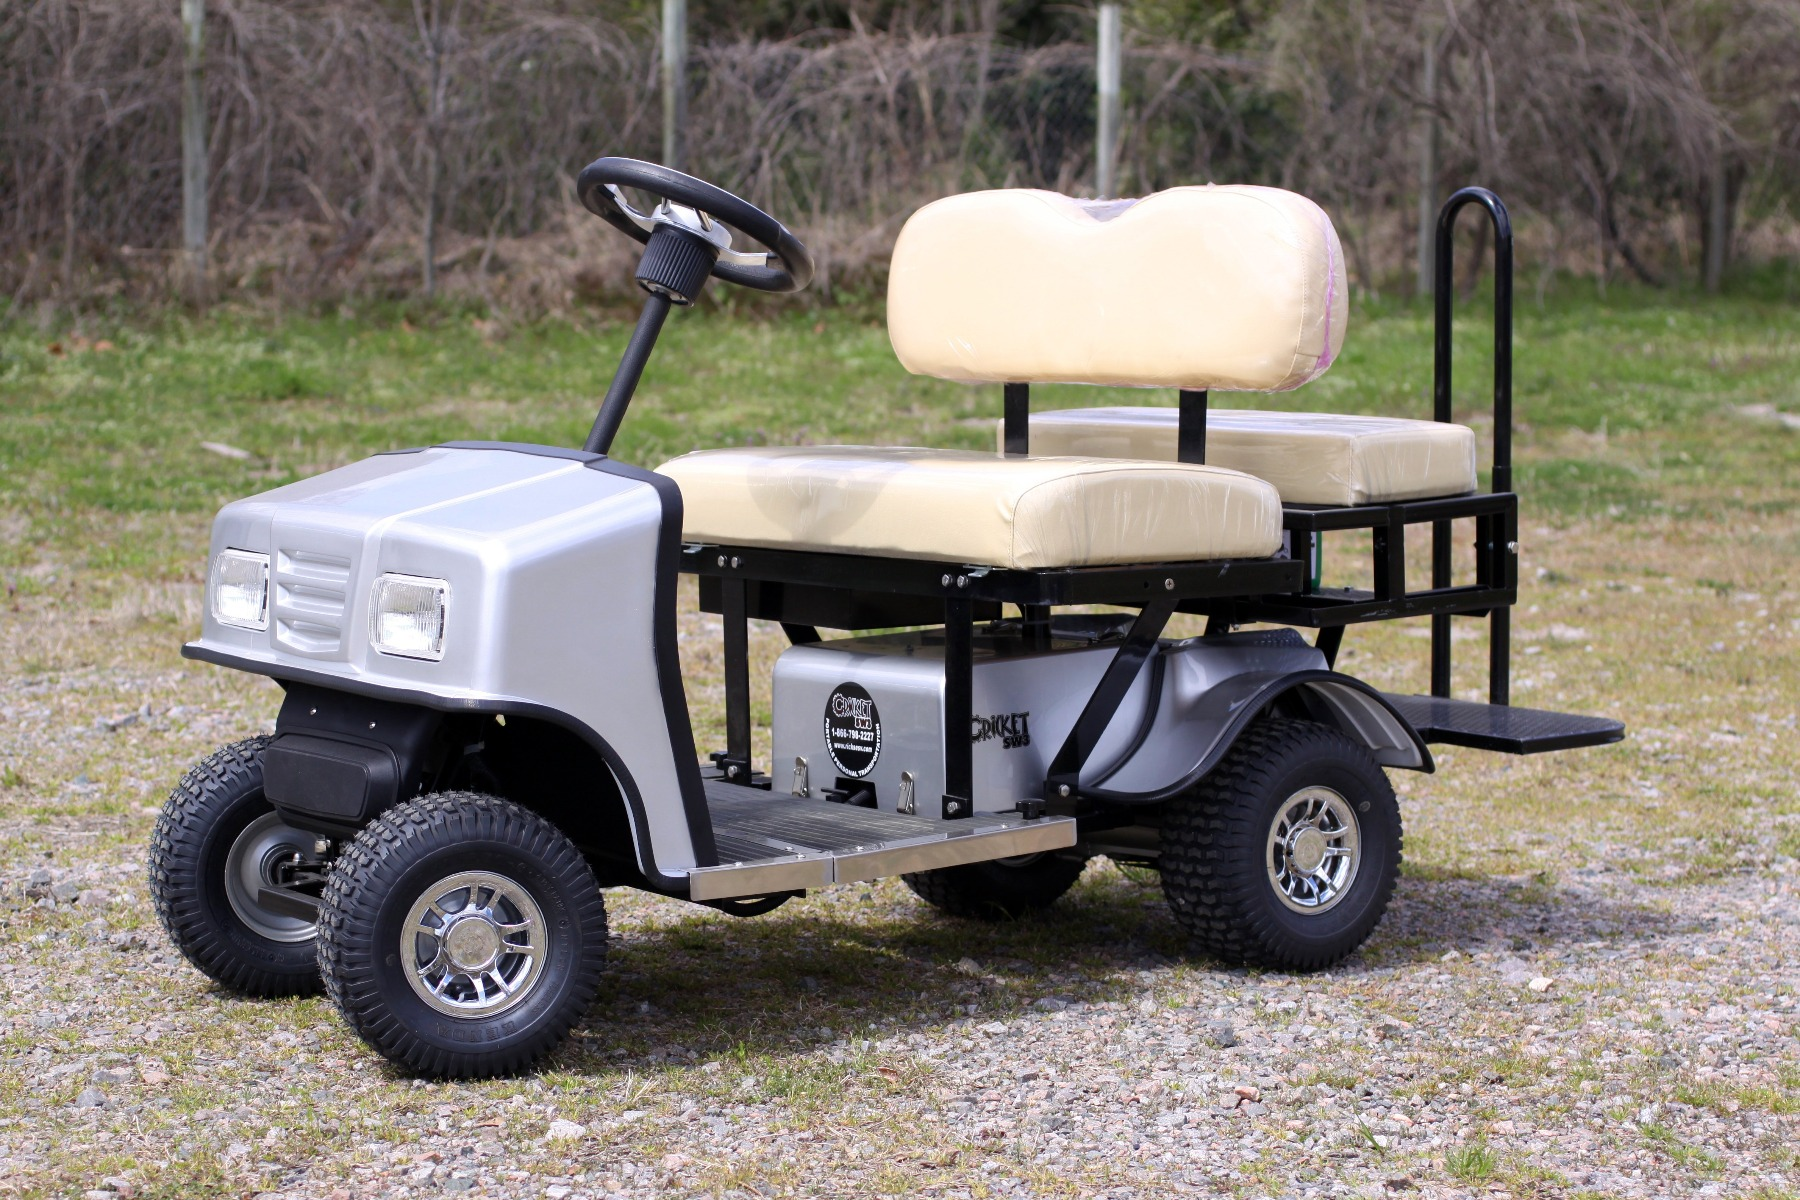 Cricket SX-3 Mini Cart for sale in Florida Image